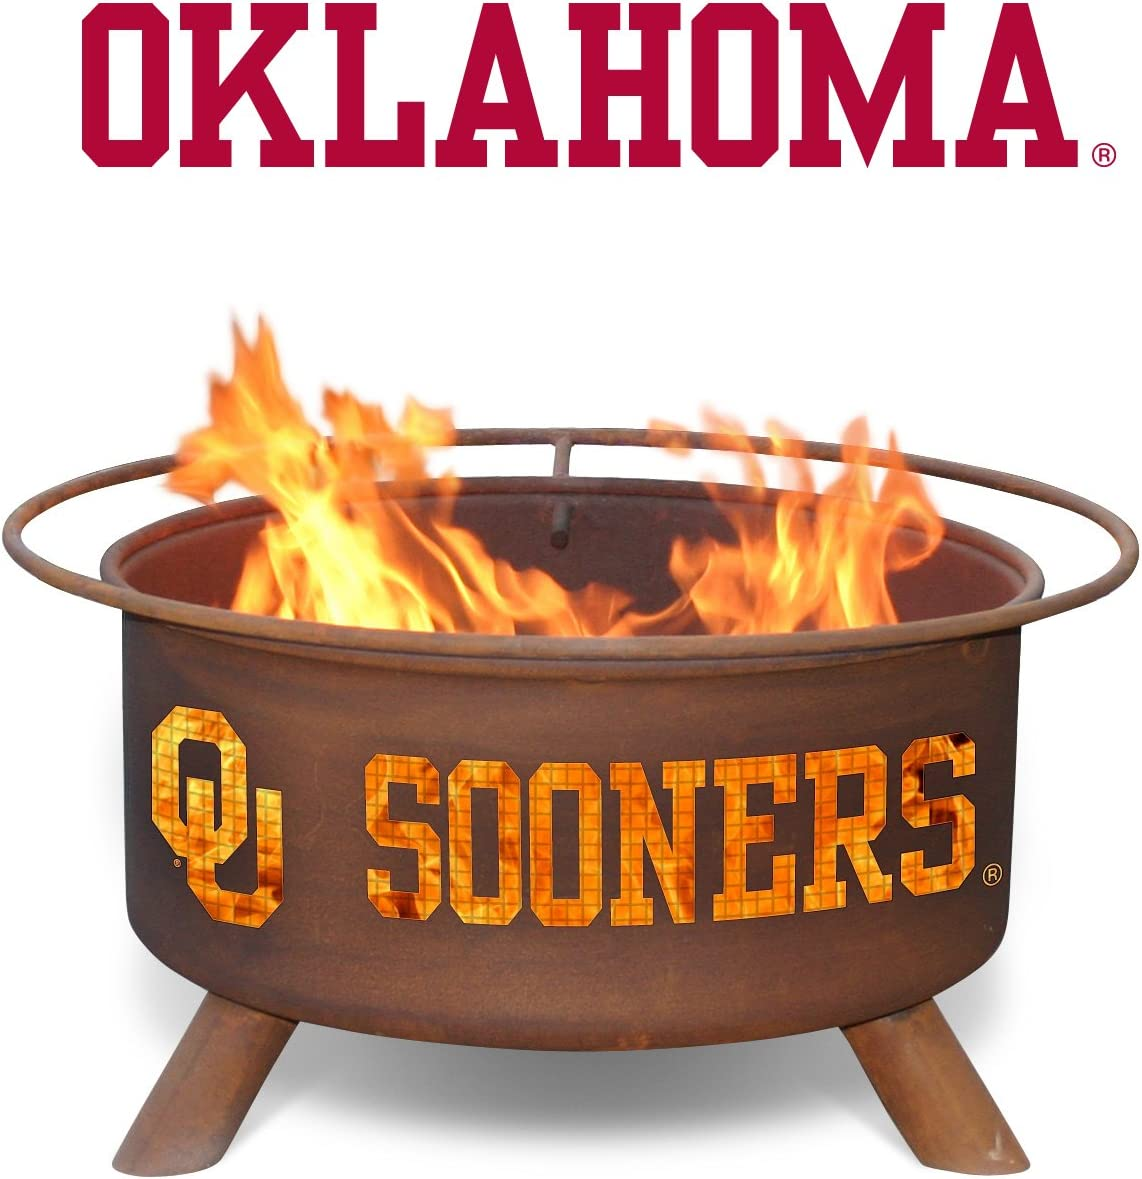 Patina Products F218, 30 Inch University of Oklahoma Fire Pit Discontinued by the manufacturer